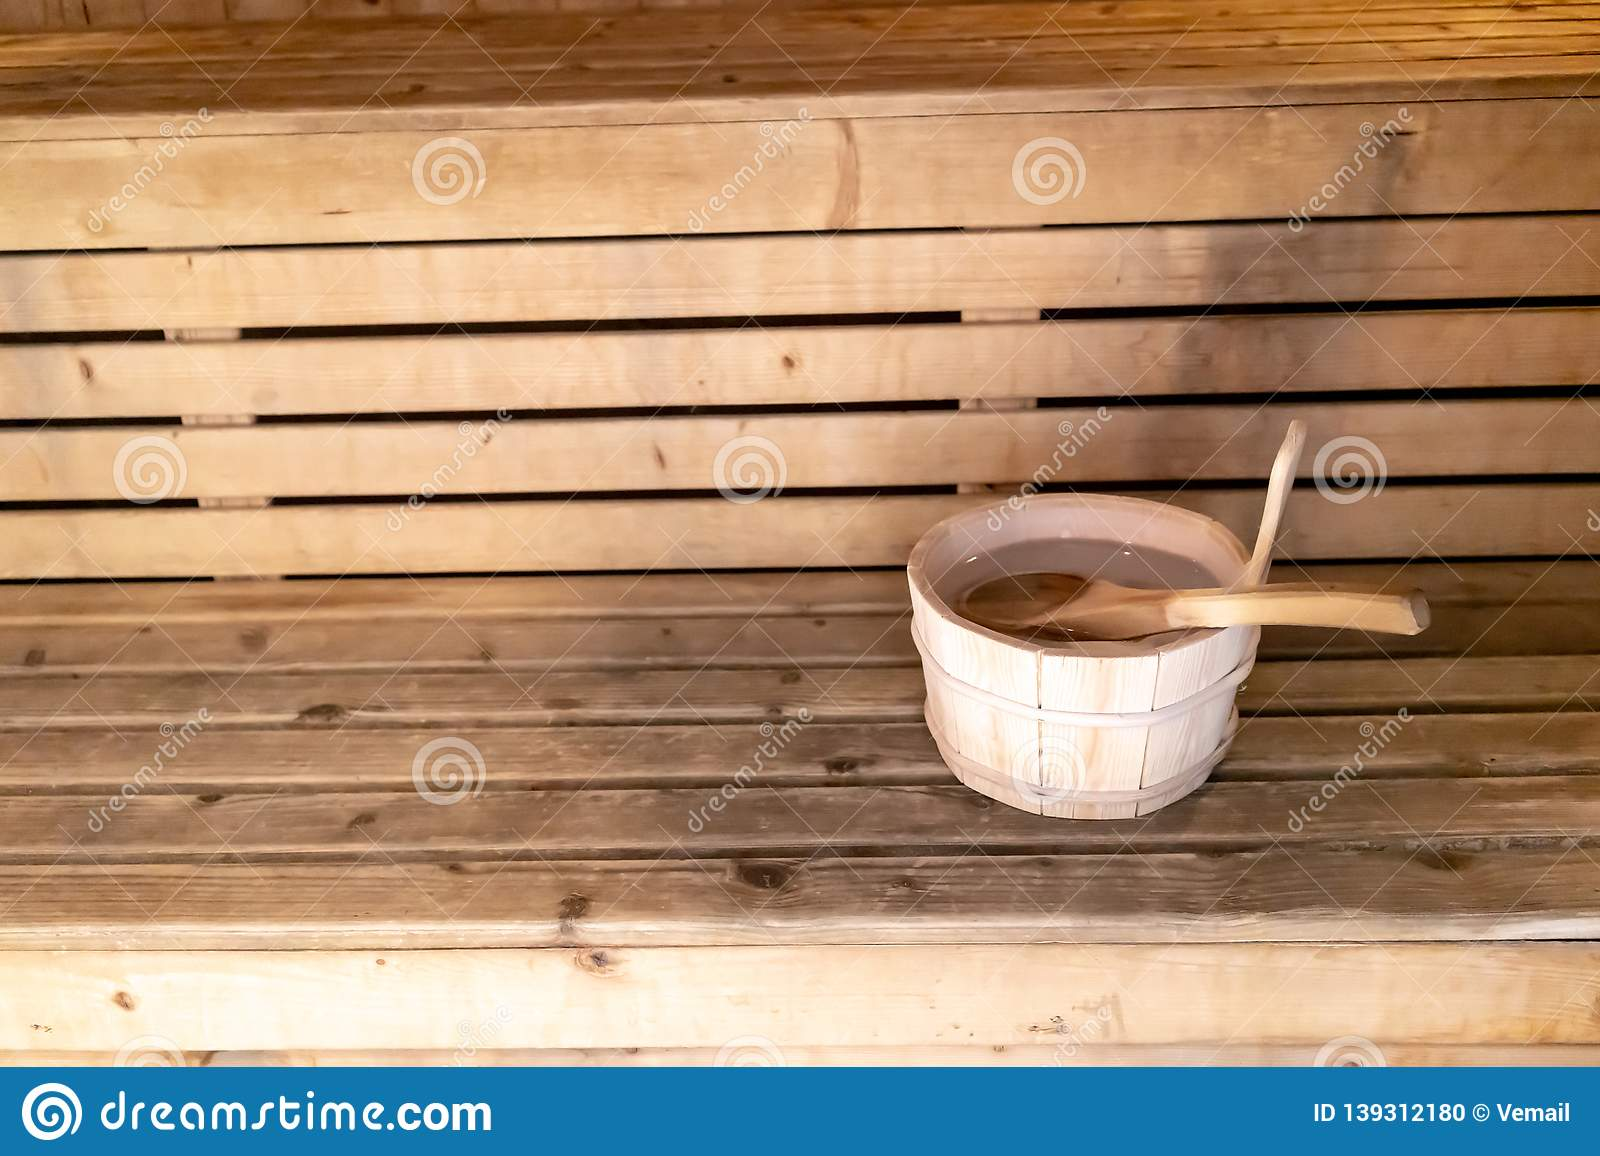 Outstanding Detail Of Bucket And Wood Spoon On A Wooden Bench Small Pdpeps Interior Chair Design Pdpepsorg